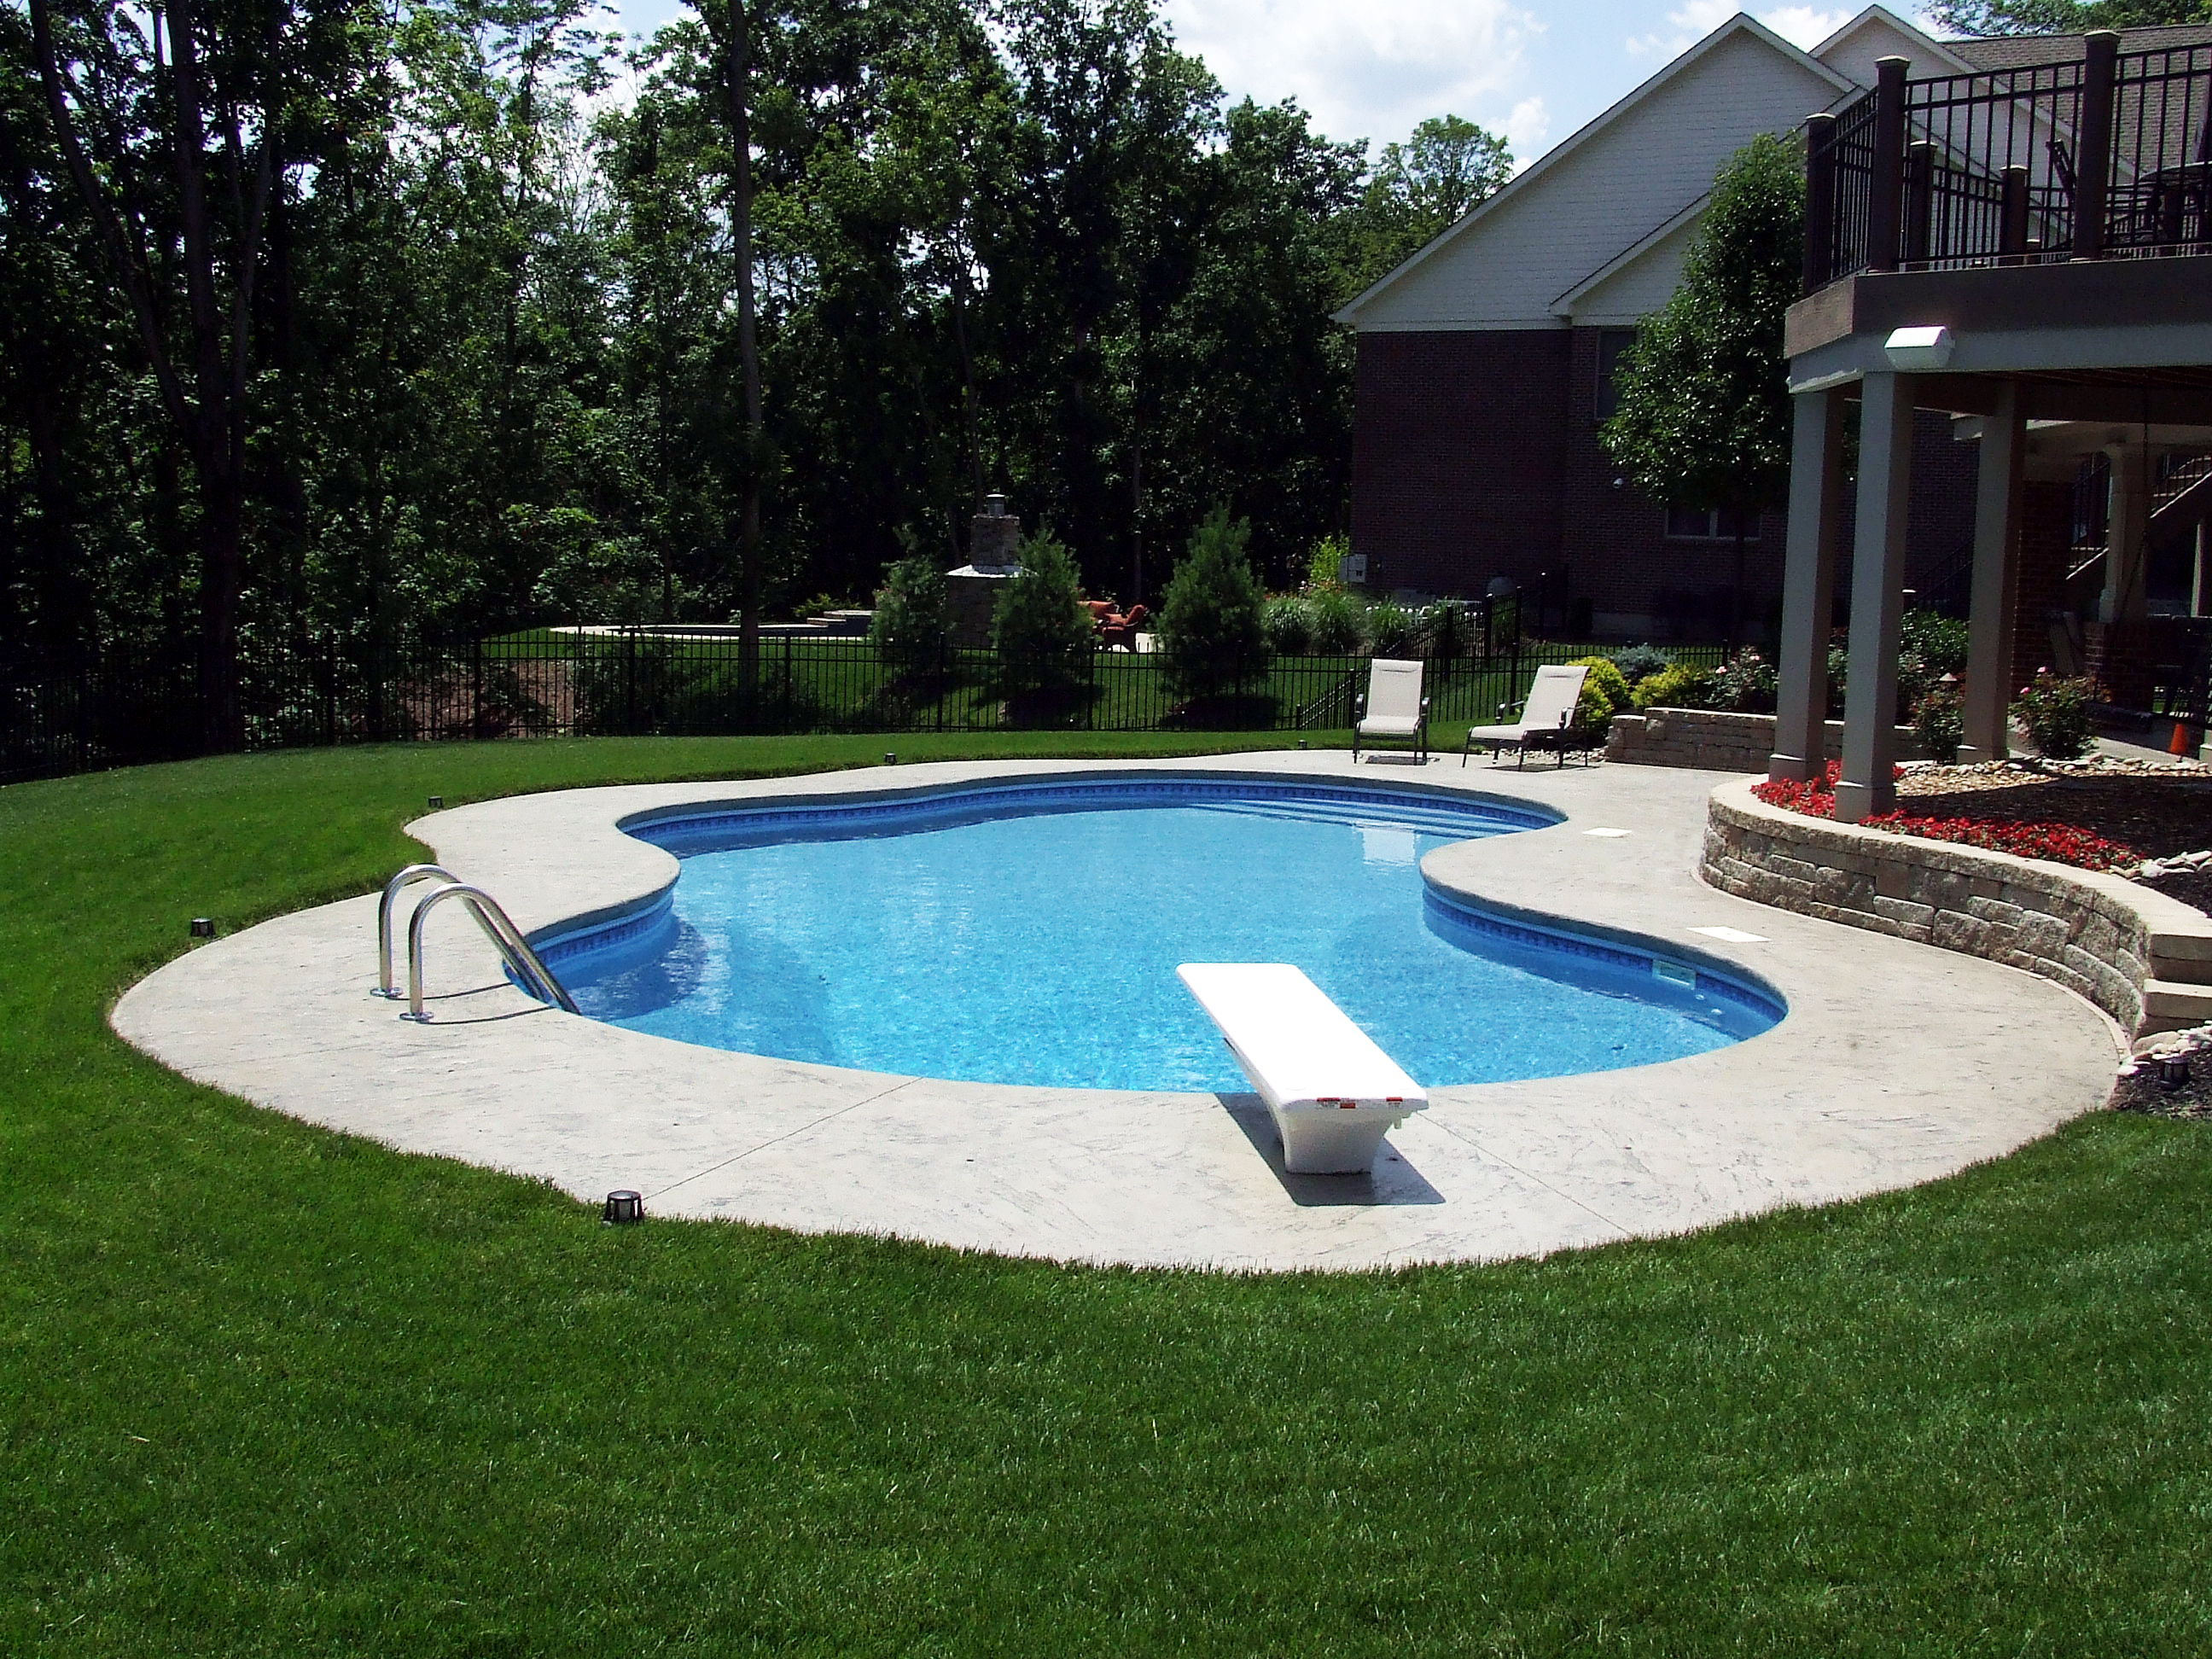 SunSpot Inground Pool Design - 116